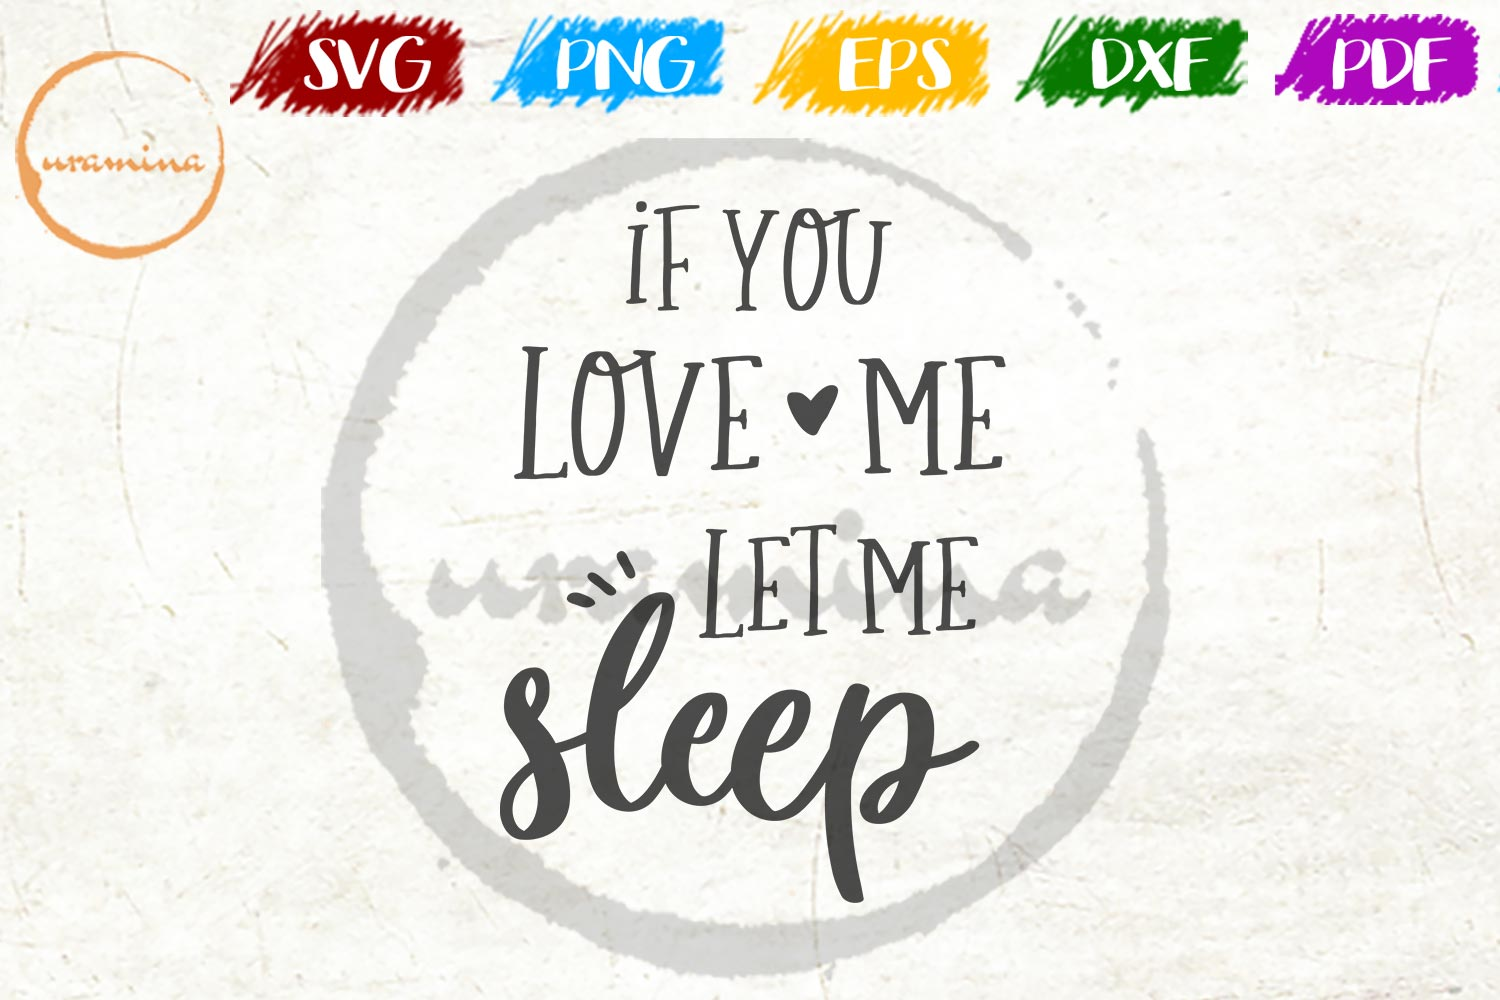 Download Free If You Love Me Let Me Sleep Graphic By Uramina Creative Fabrica for Cricut Explore, Silhouette and other cutting machines.